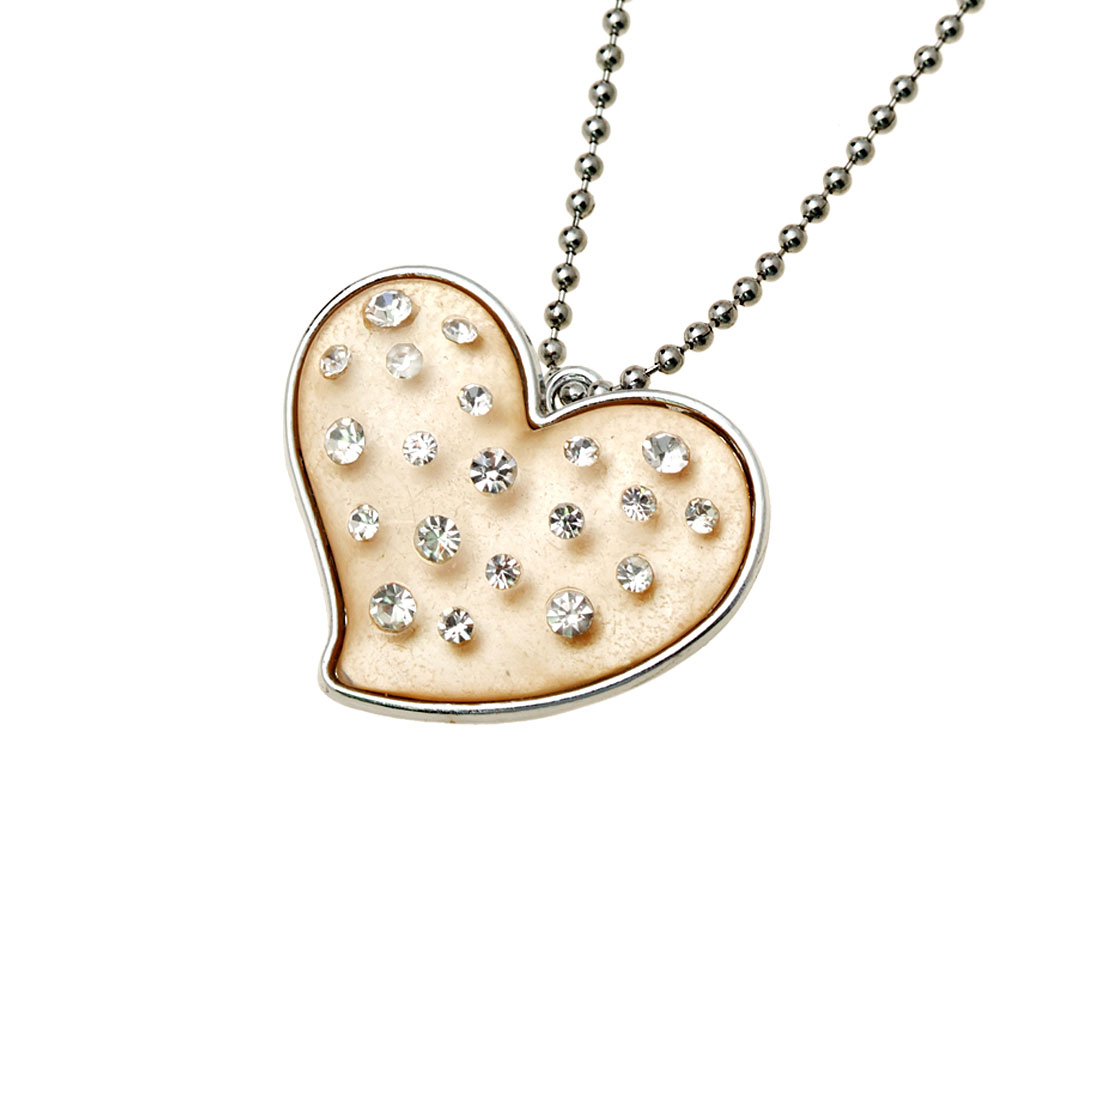 Fashion Jewelry Beige Crystal Heart Rhinestone Pendant Sweater Chain Necklace Lady's Watch